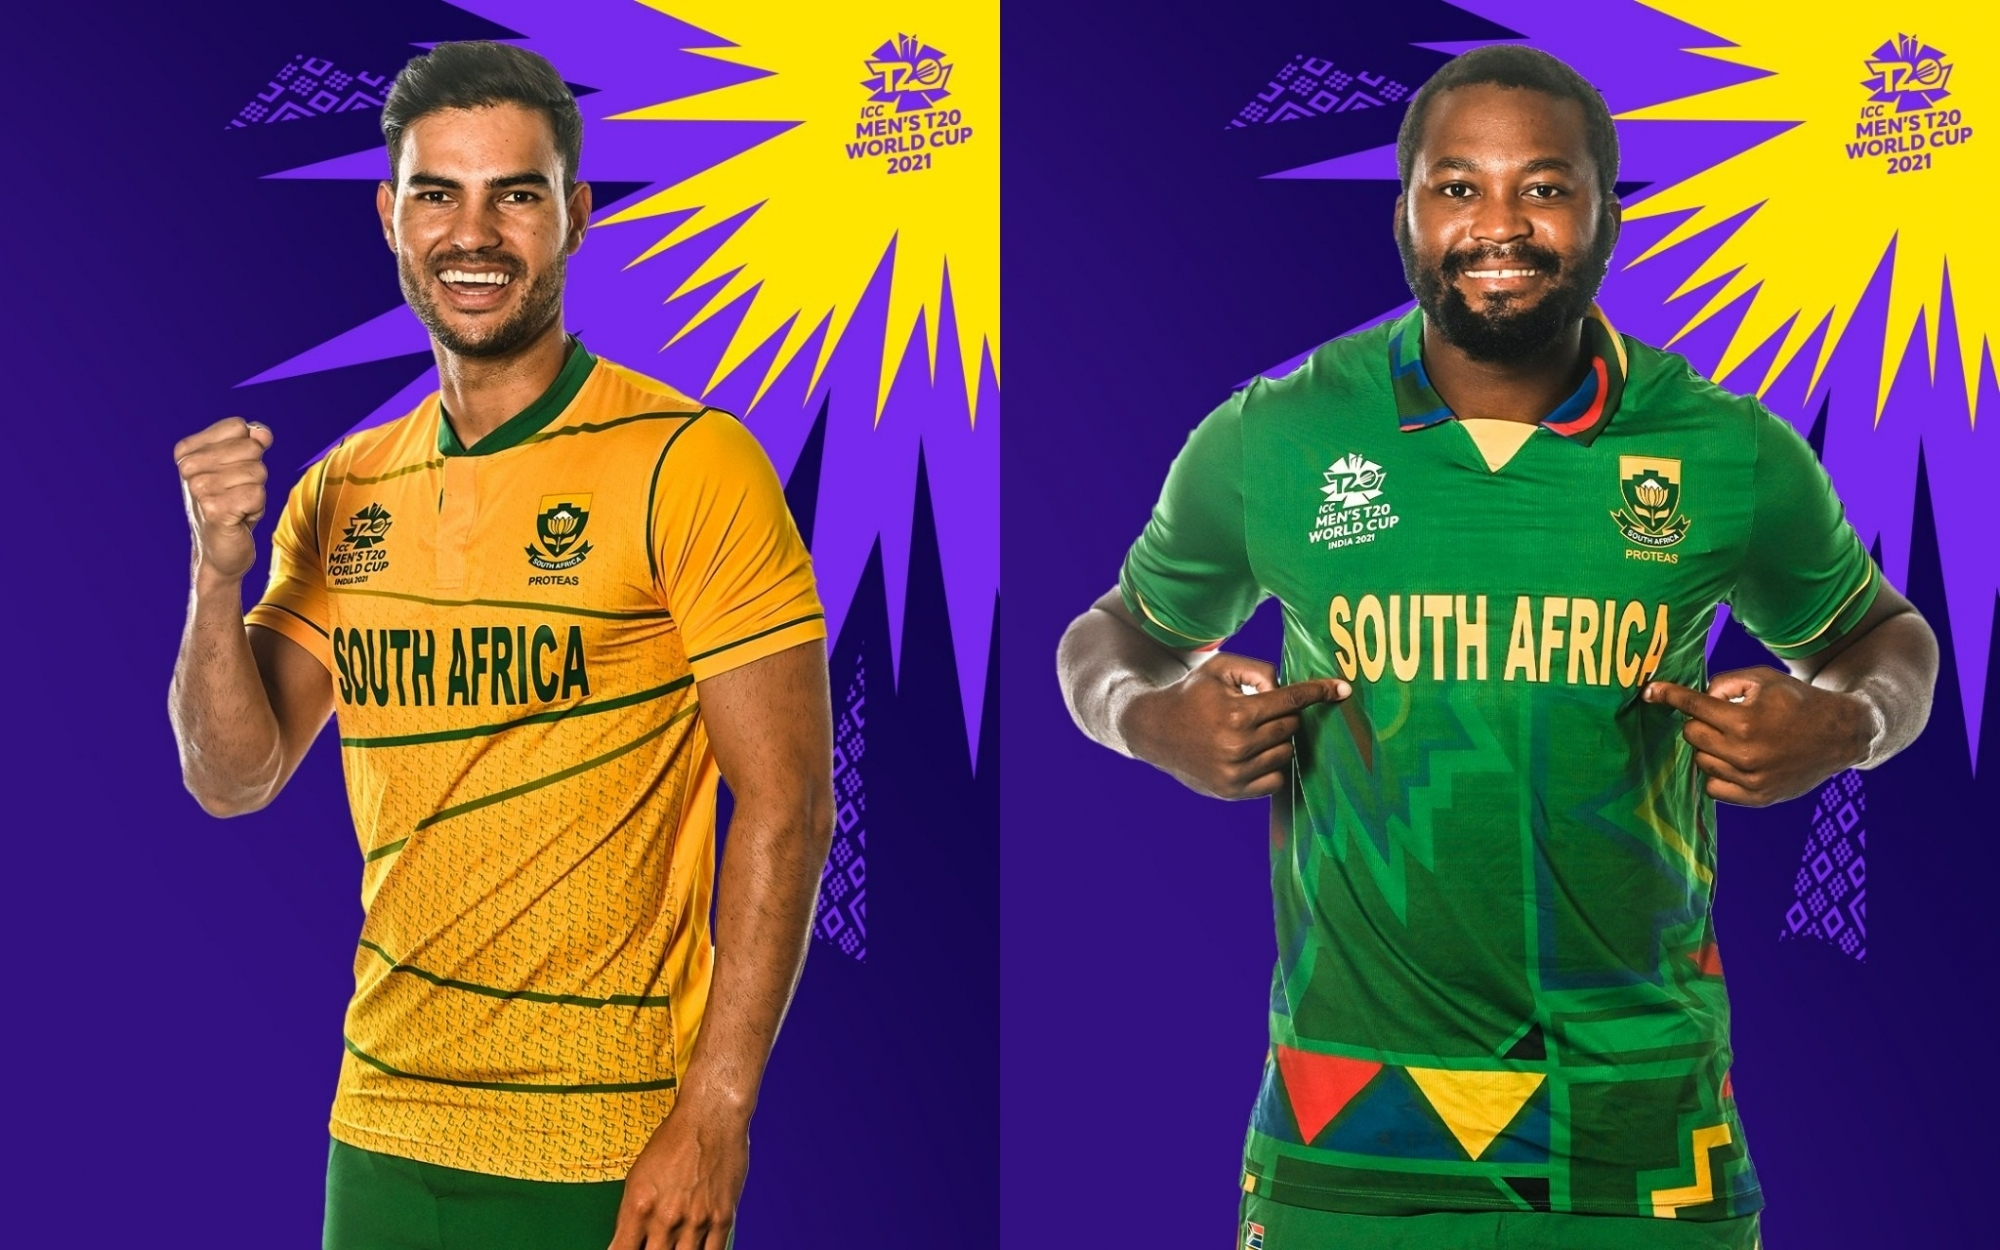 T20 World Cup: South Africa unveil two jerseys for mega event